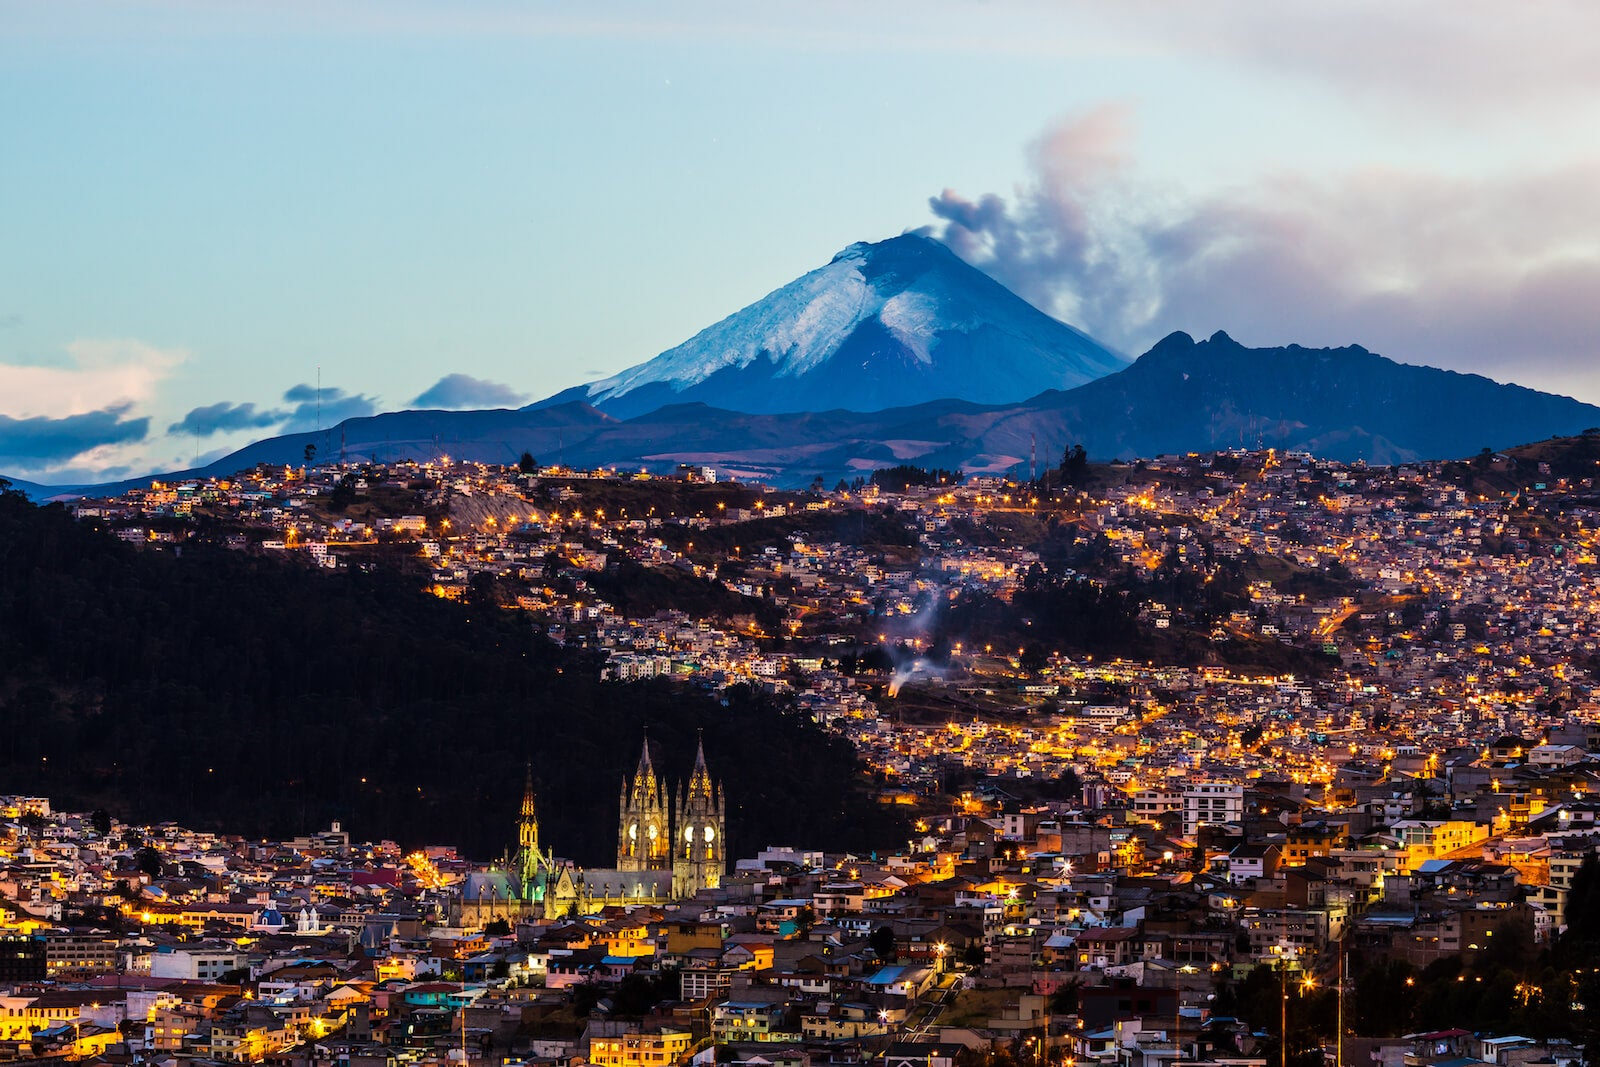 Delta award sale to South America from 20,000 miles round-trip